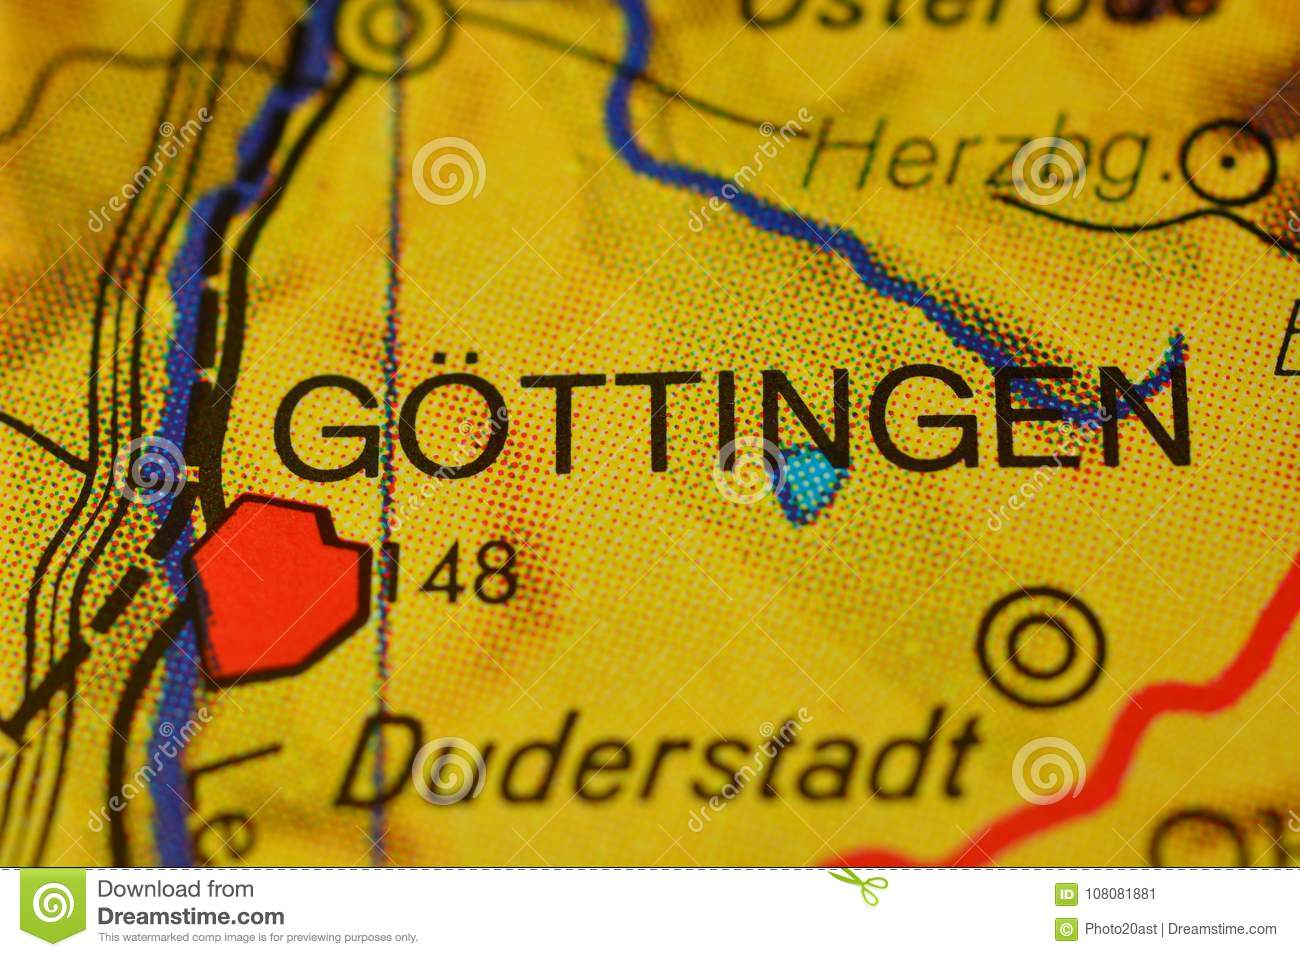 Map Of Germany Gottingen.The Word Gottingen On The Map Stock Image Image Of City Places